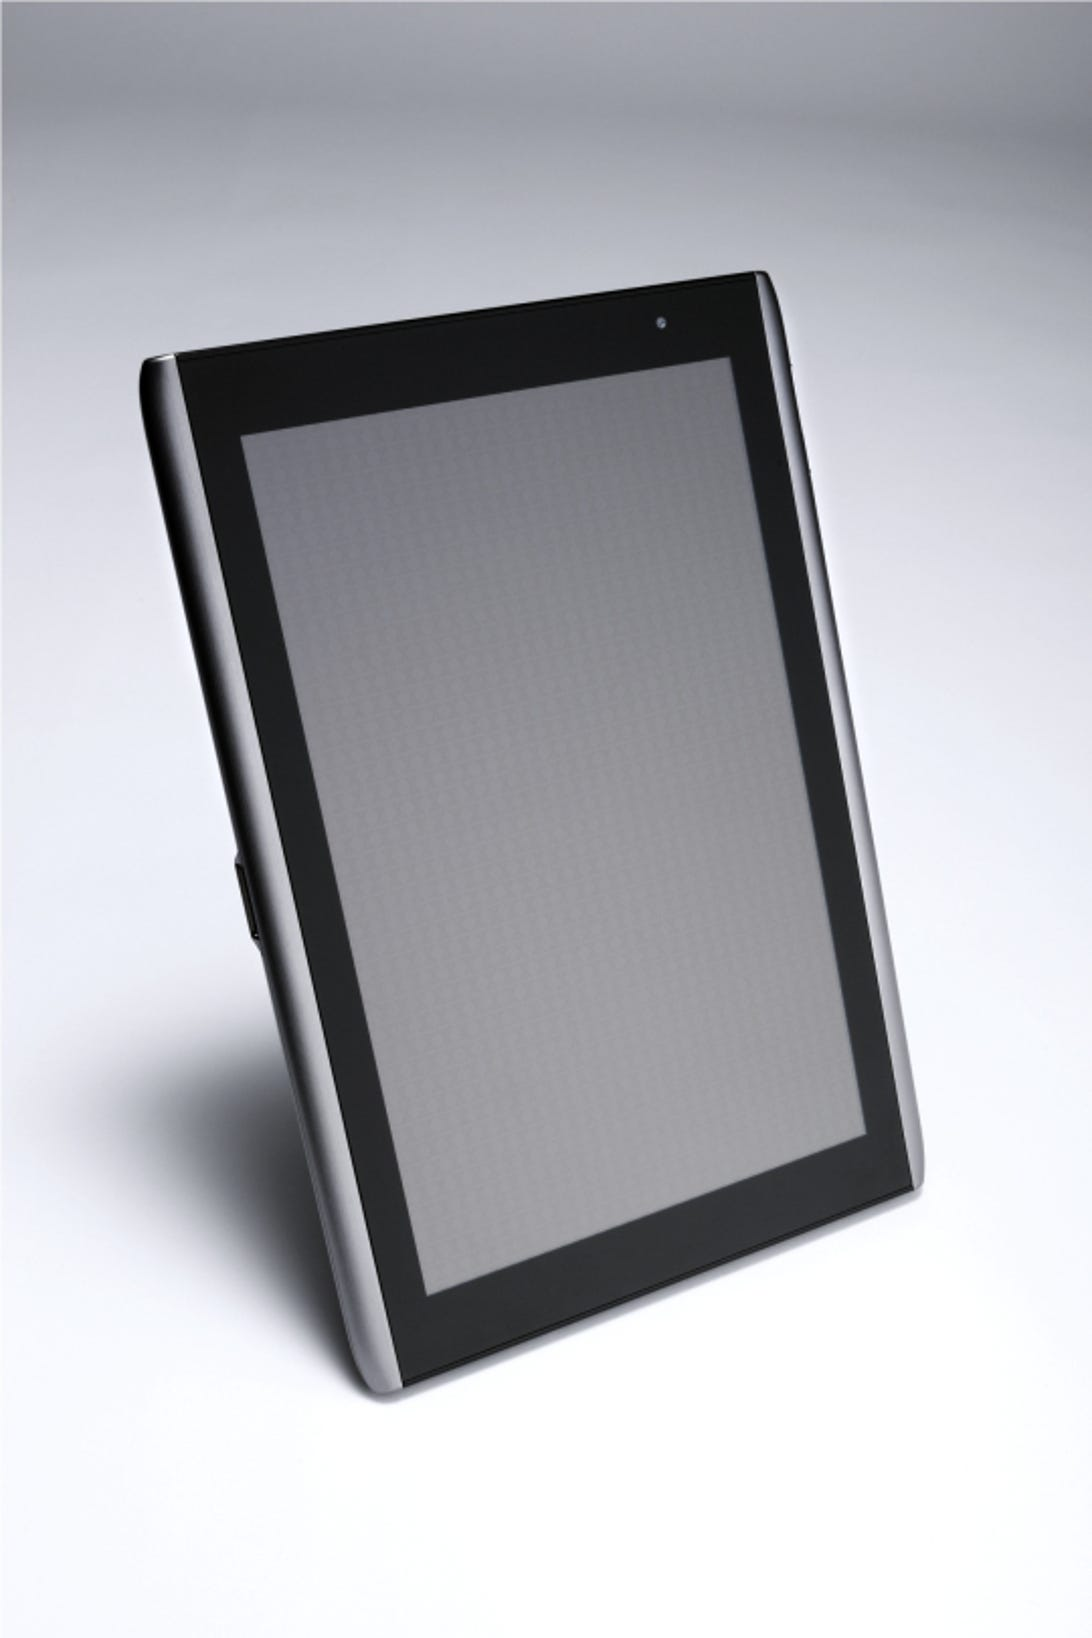 40153865-8-acer-android-tablet-610-pic4.jpg